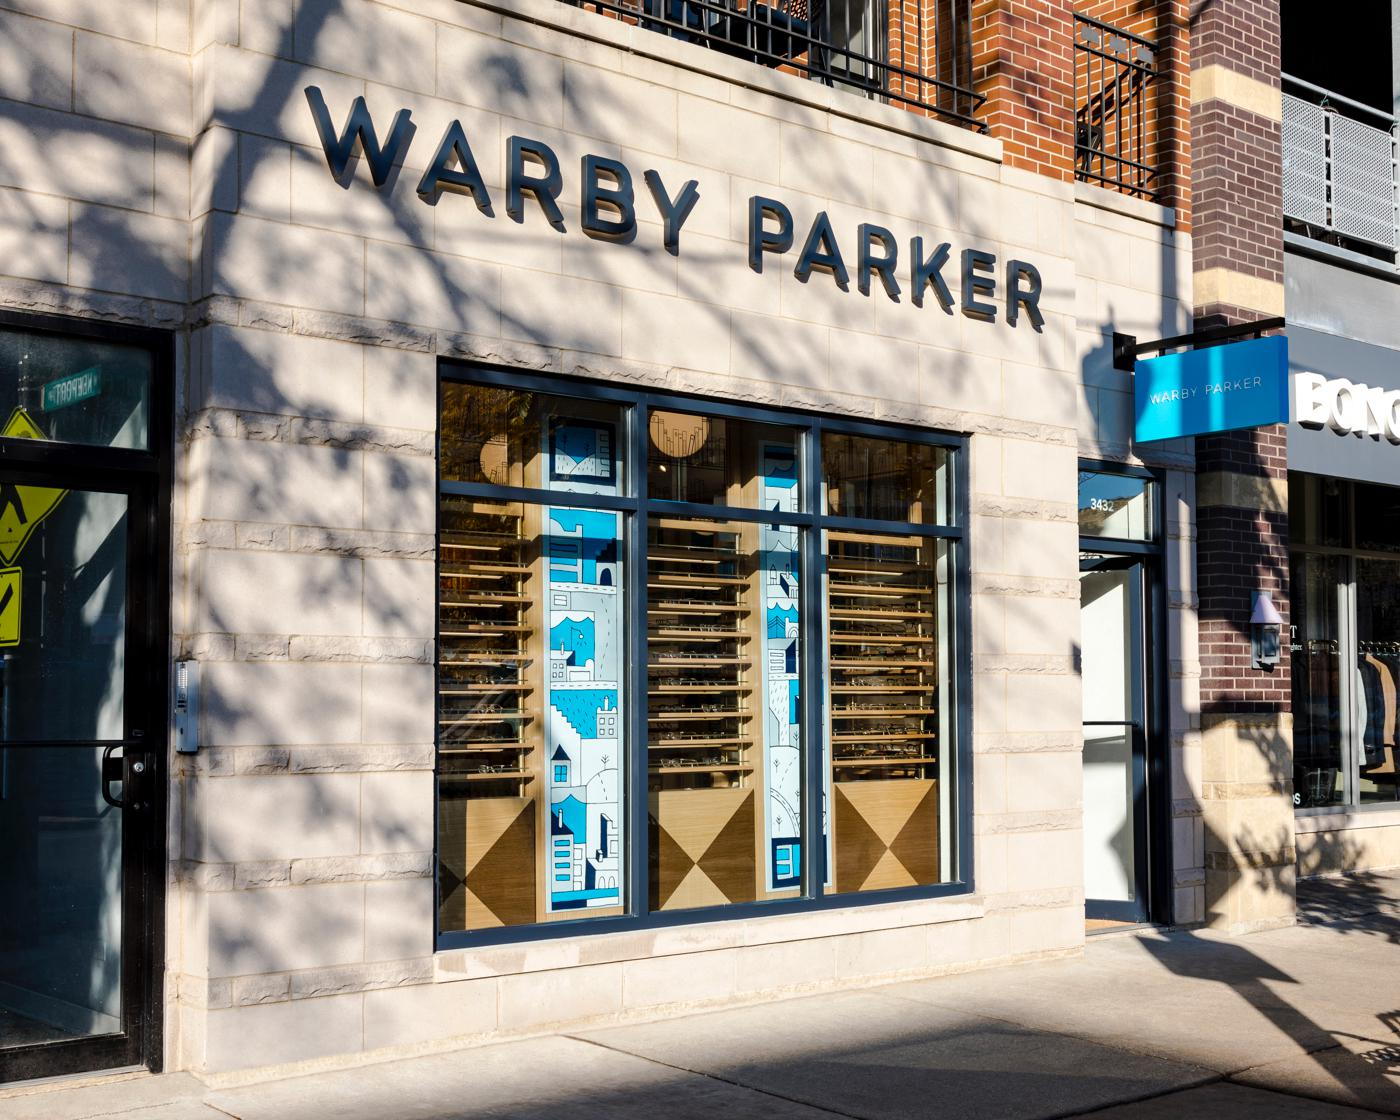 Southport Ave Warby Parker